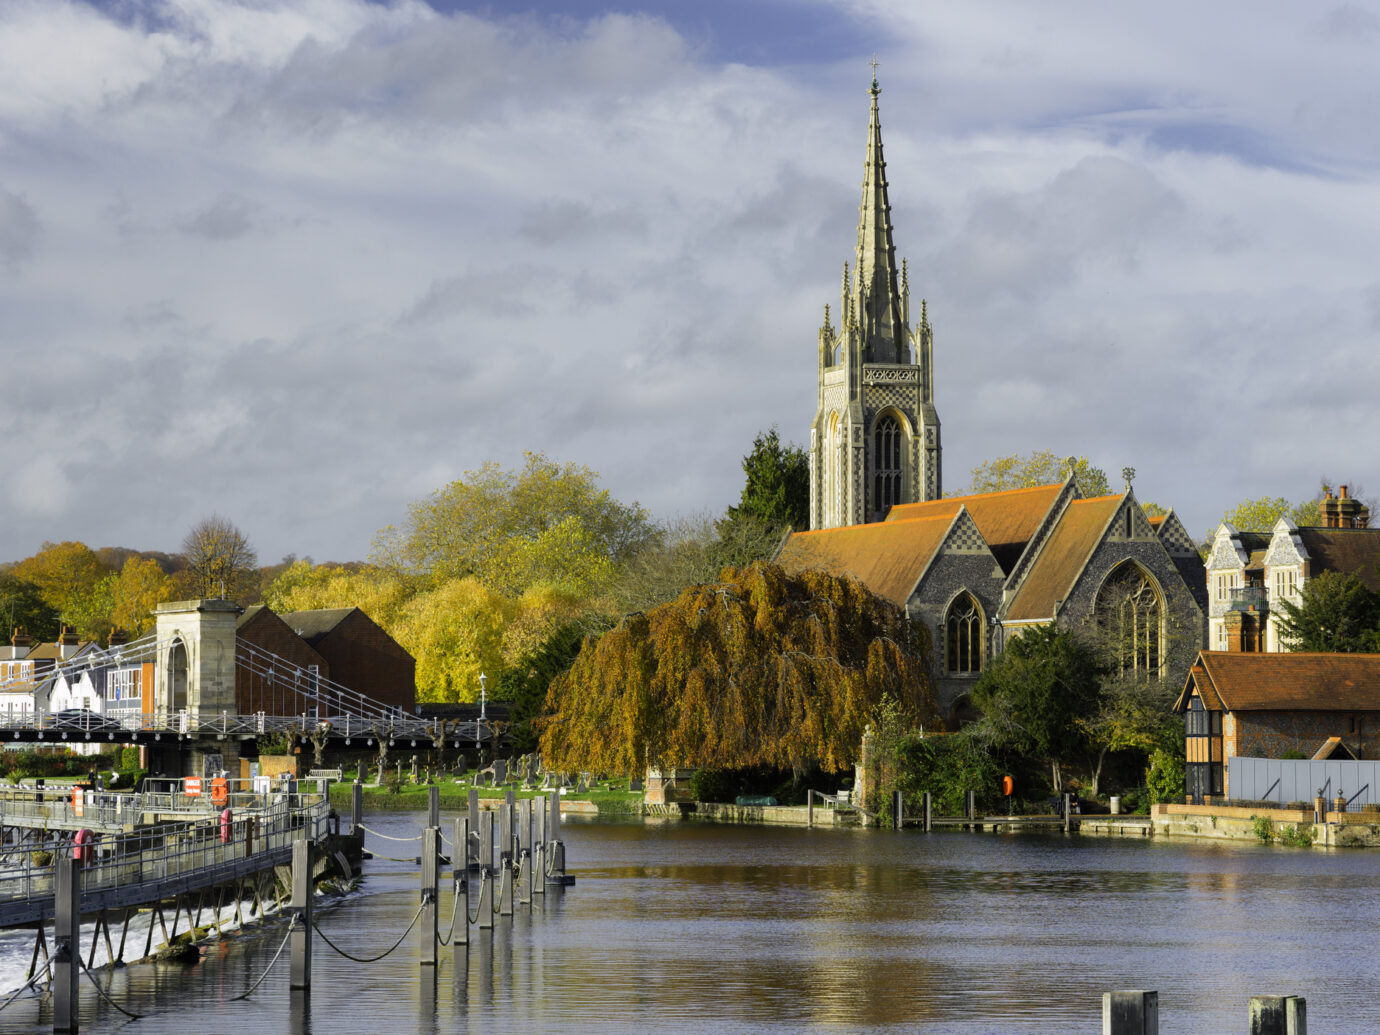 Looking up the River Thames towards the town of Marlow in Buckinghamshire, in the south east of England.